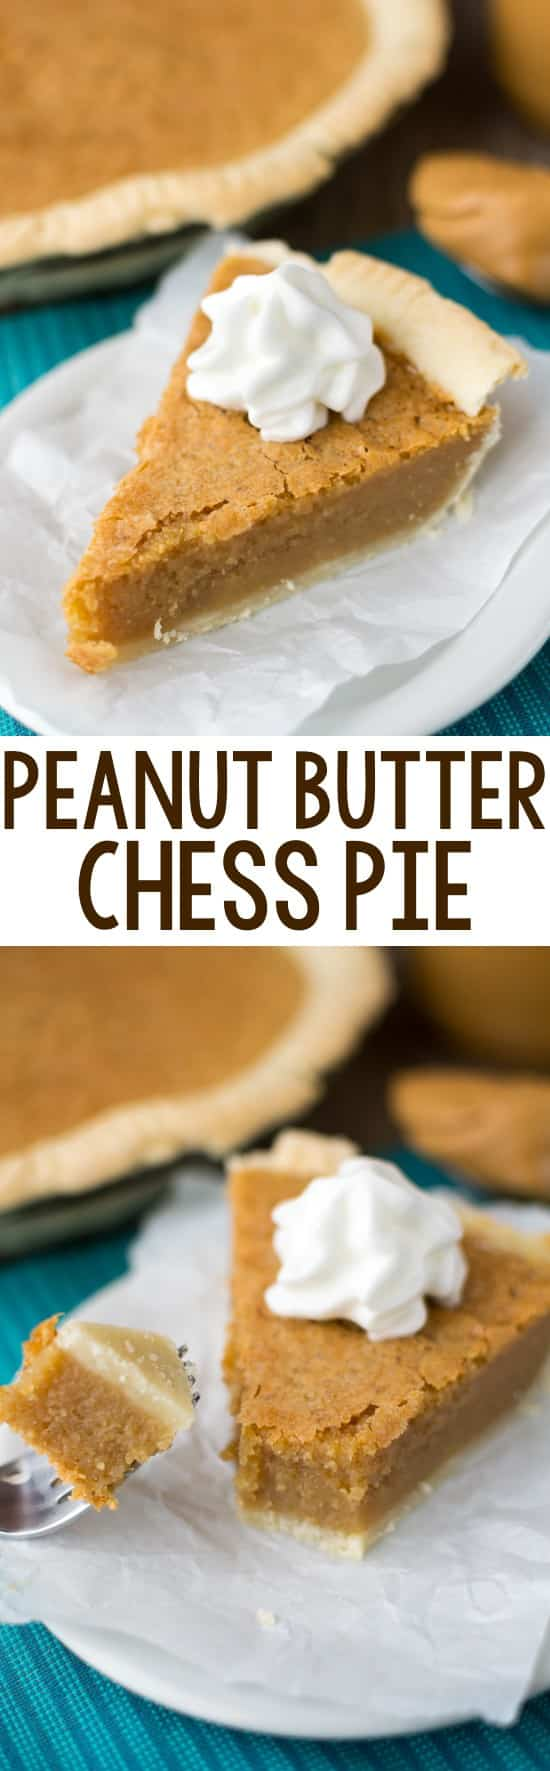 Easy Peanut Butter Chess Pie - this is a classic chess pie recipe full of peanut butter flavor!